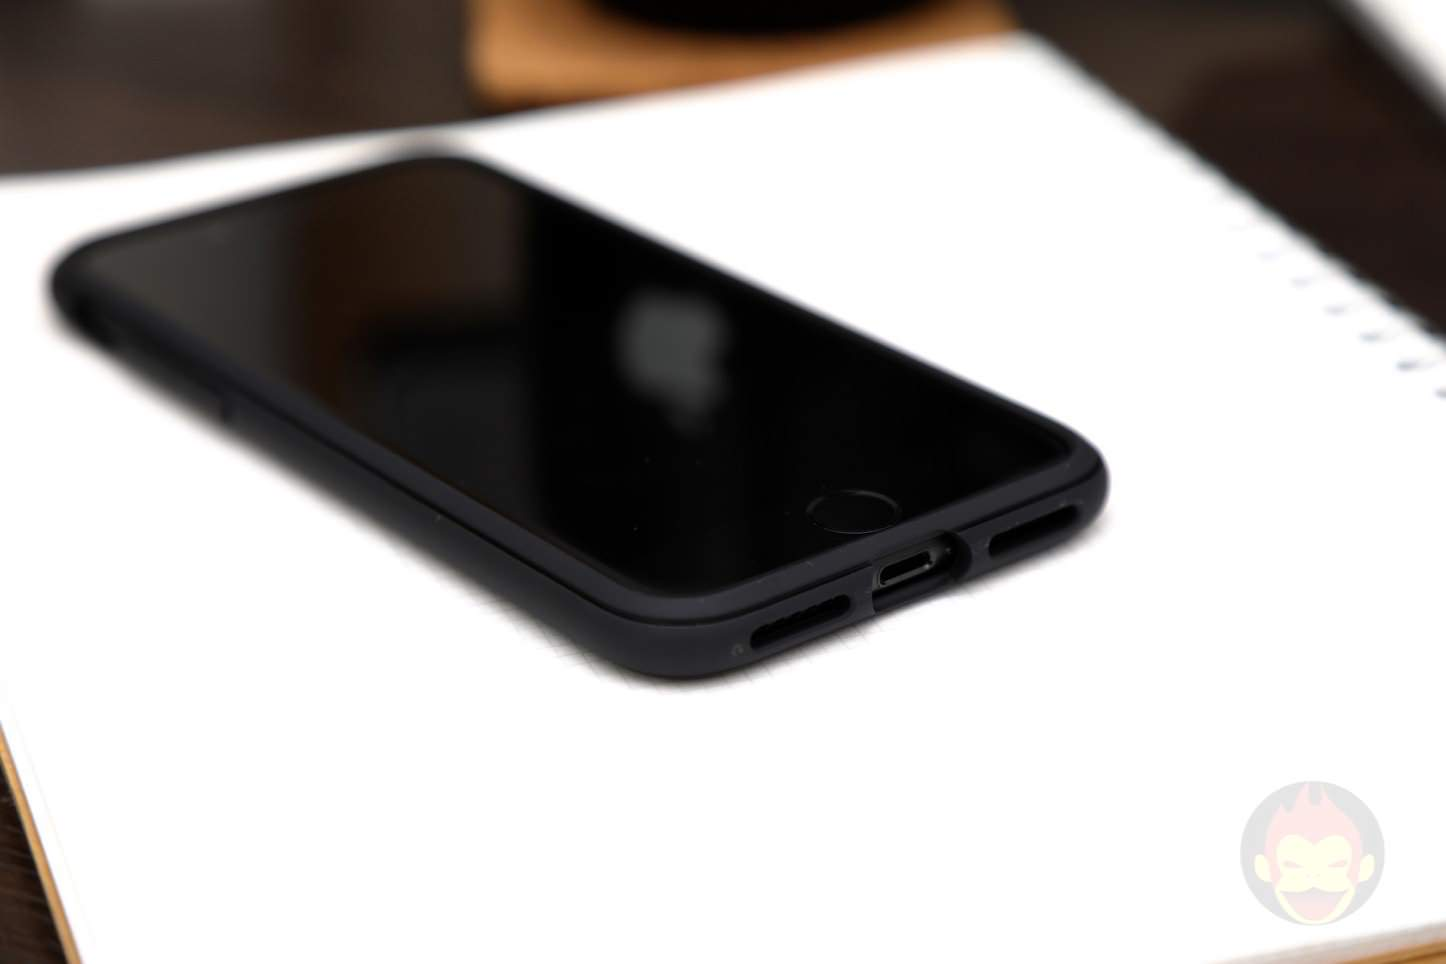 Rugged-Armor-for-iPhone7-7Plus-12.jpg